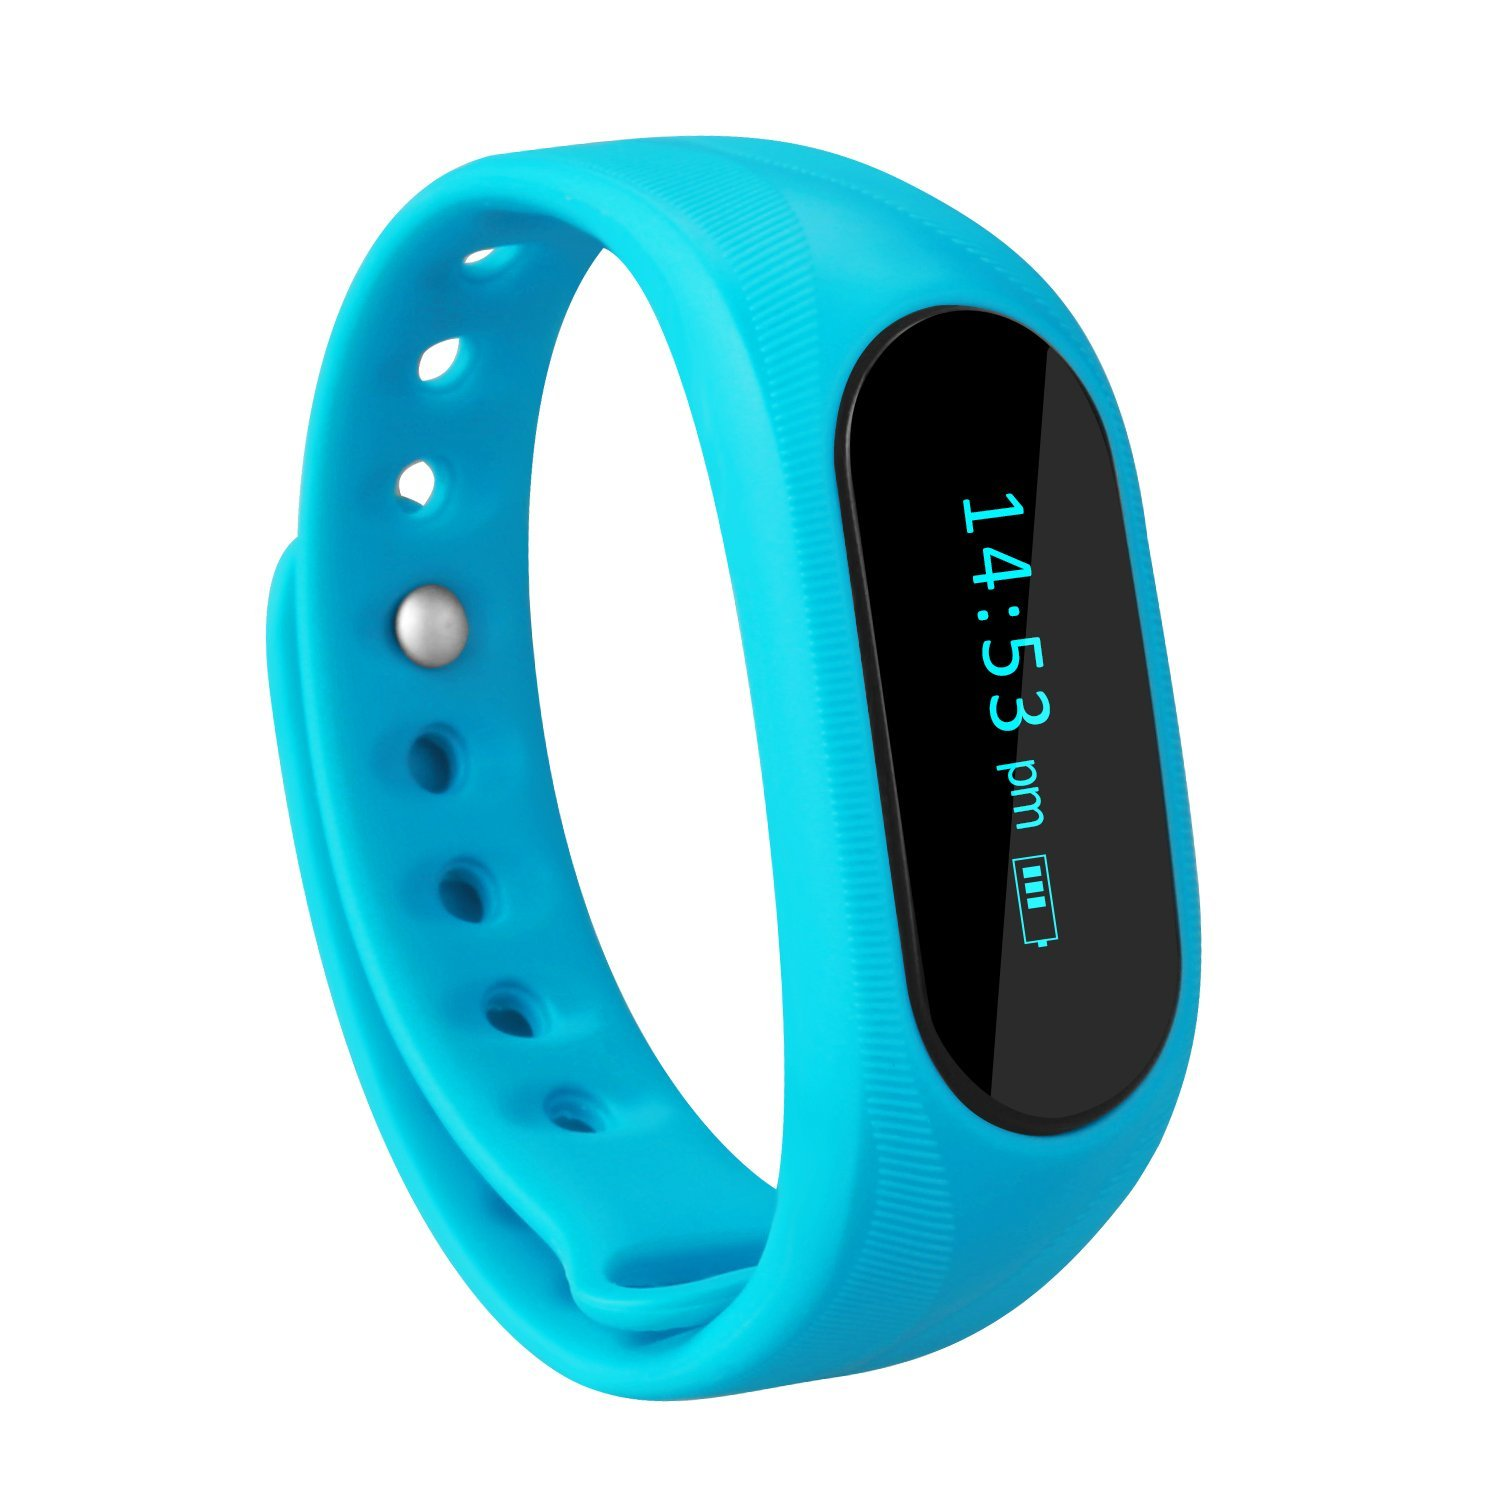 2-cubot-wireless-activity-wristband-smart-fitness-tracker